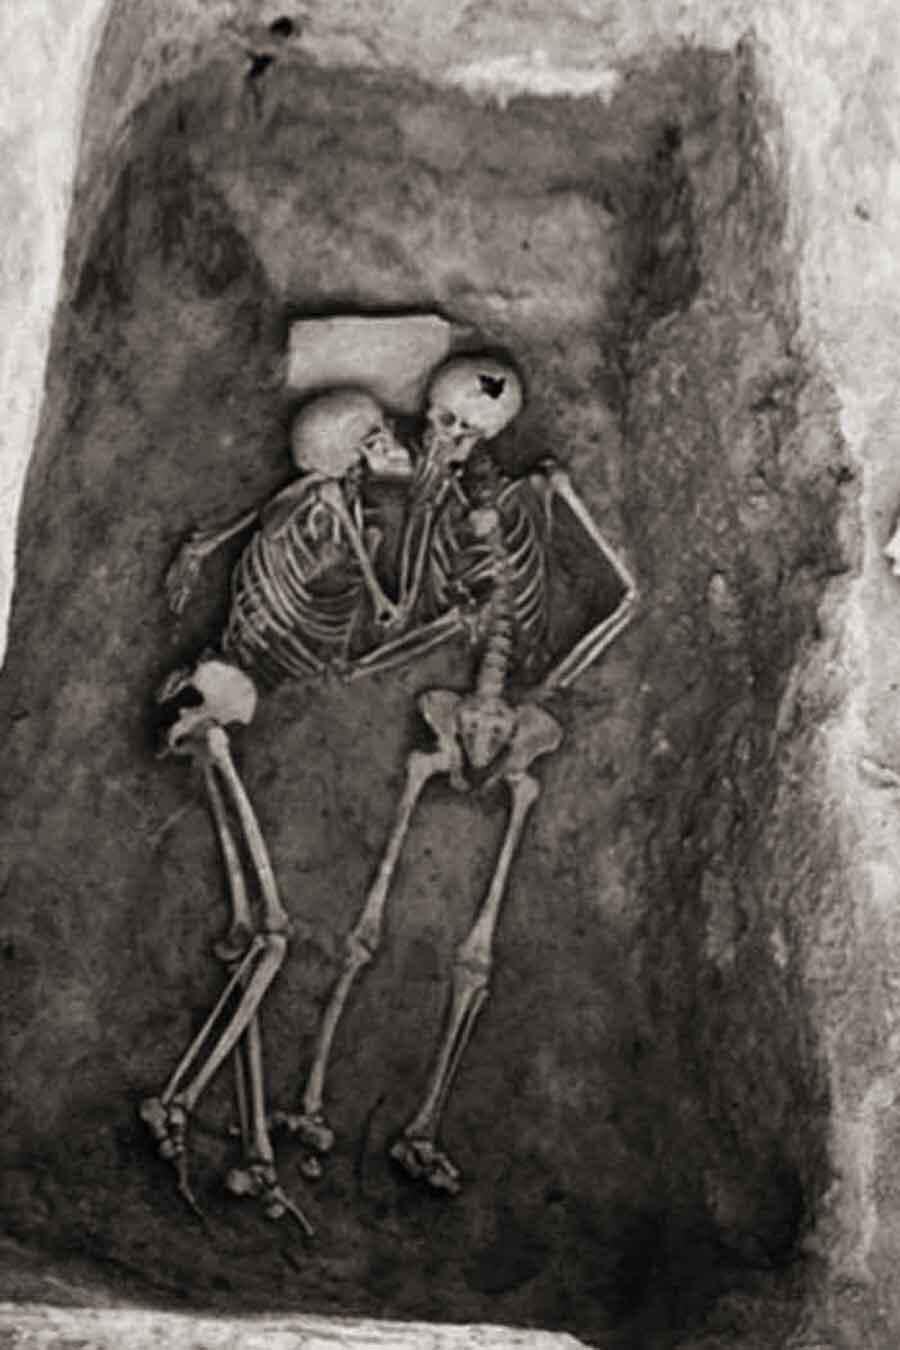 This is known as the 6000 year old kiss, it is found in a tomb in Iran. http://t.co/jOBuFemNAv